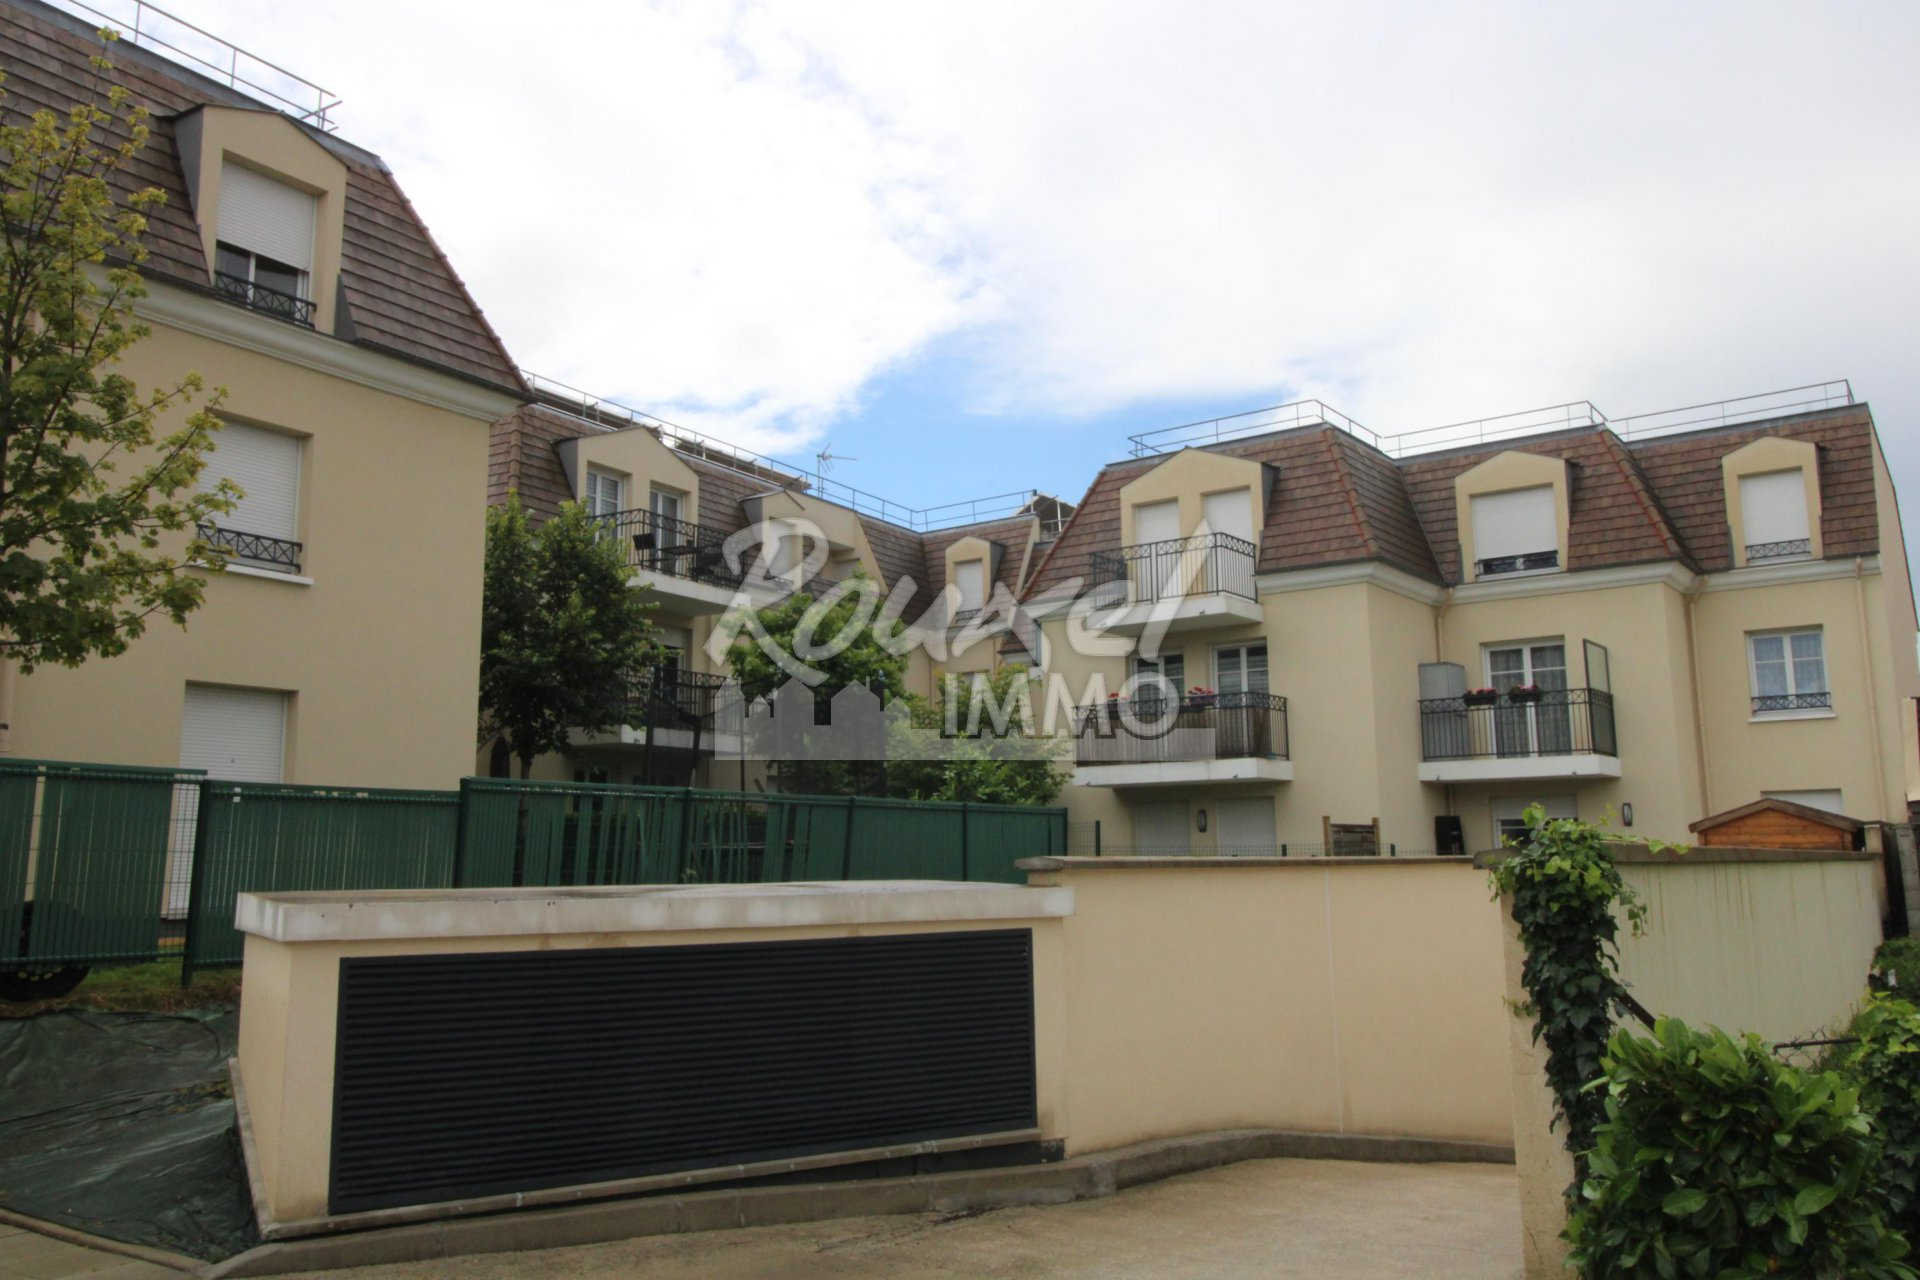 Location Appartement - Pontault-Combault Le bourg de Pontault